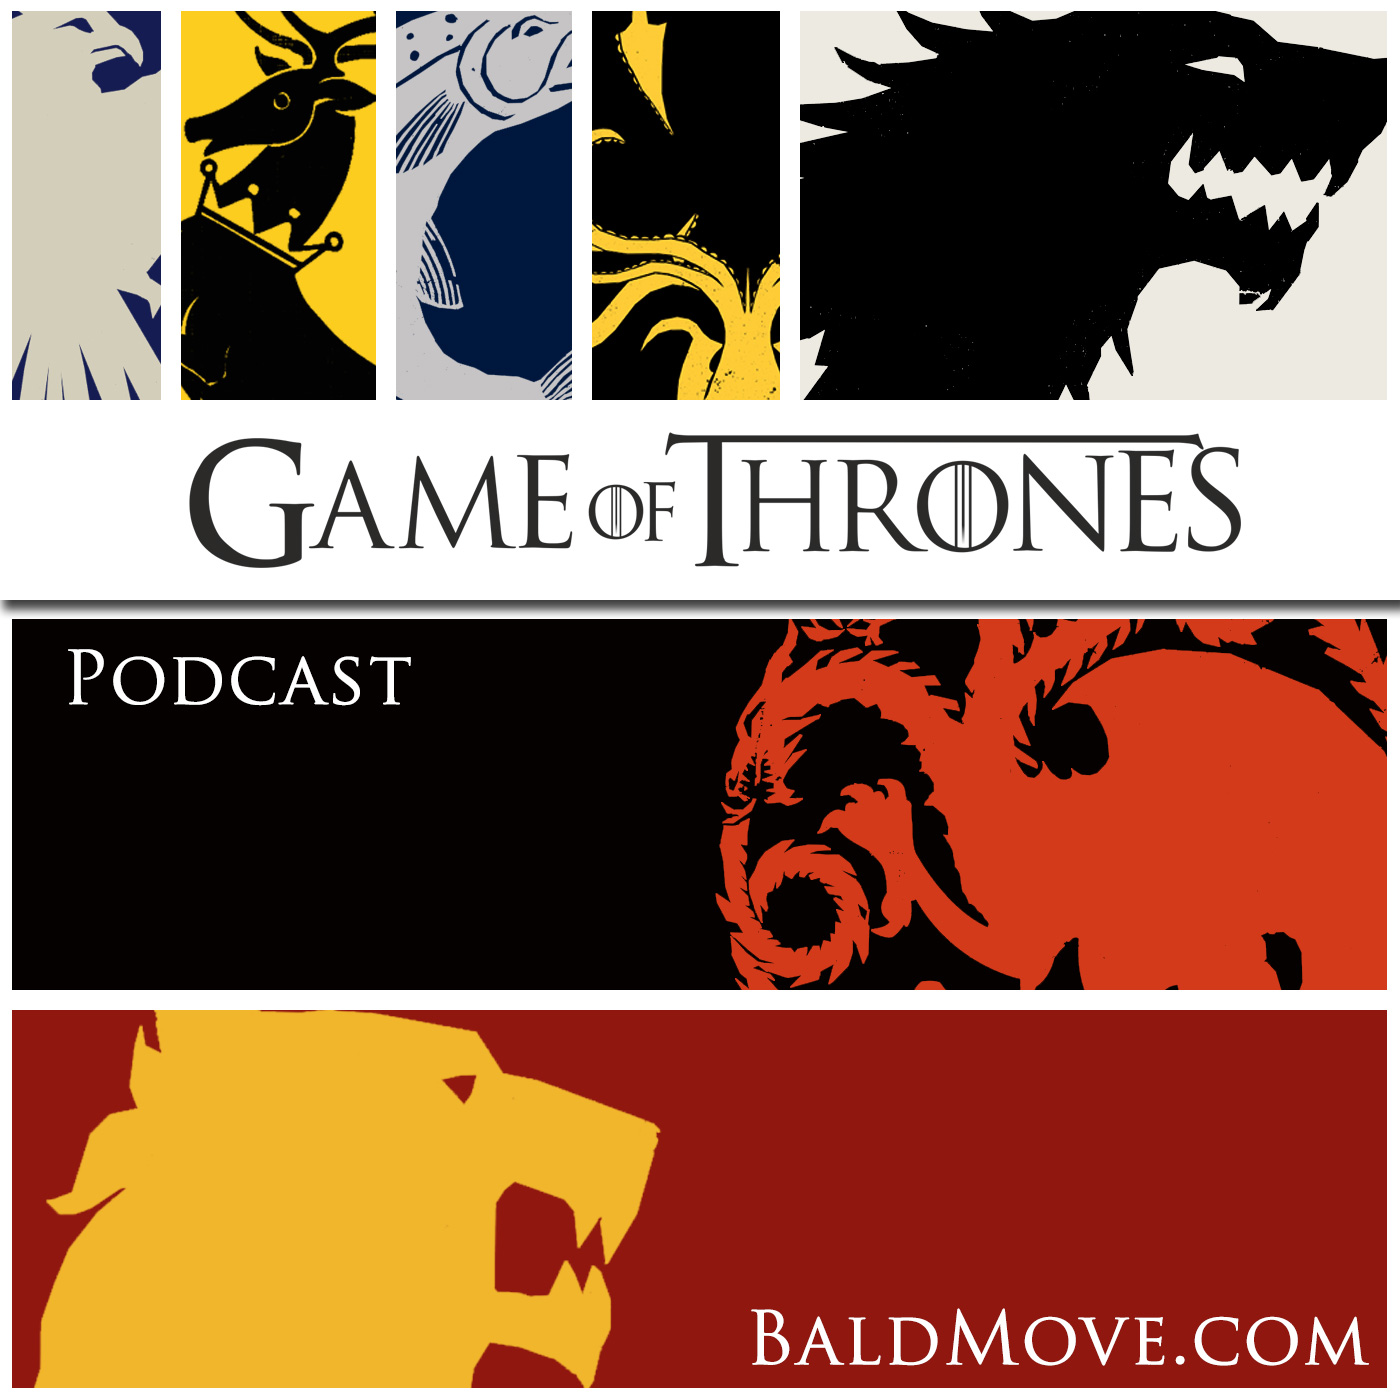 804 - The Last of the Starks